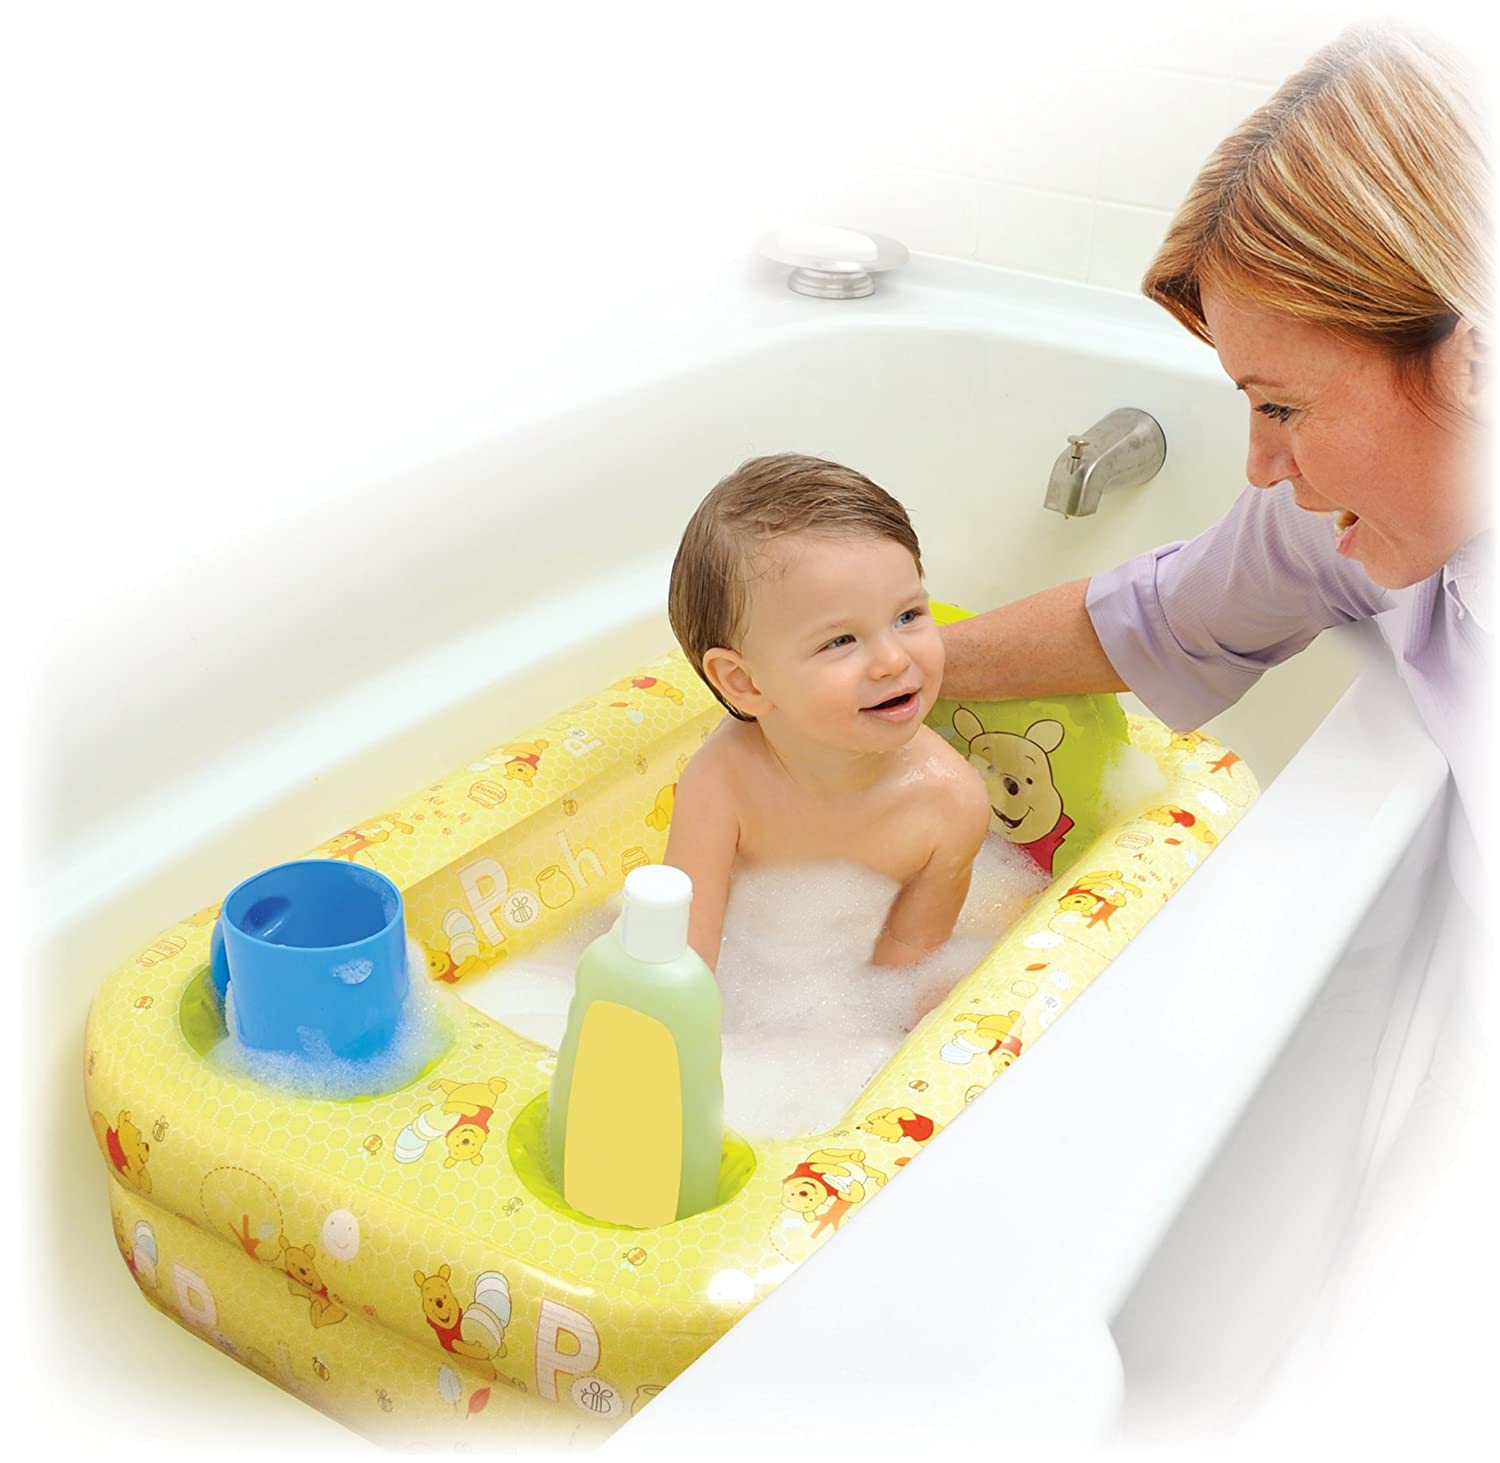 top 10 best large size baby bath tubs reviews 2016 2017 on flipboard. Black Bedroom Furniture Sets. Home Design Ideas